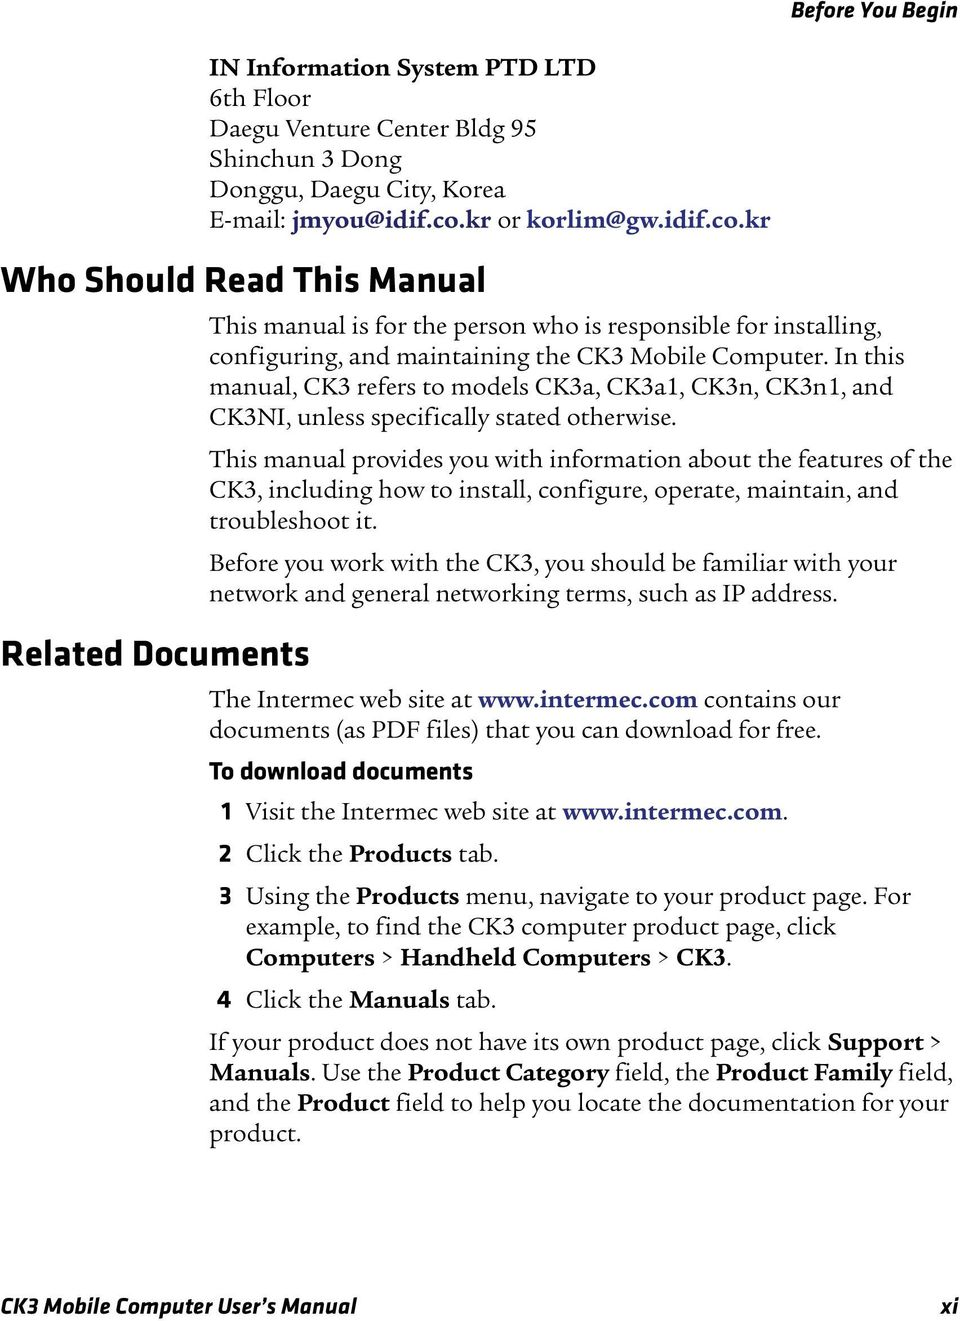 In this manual, CK3 refers to models CK3a, CK3a1, CK3n, CK3n1, and CK3NI, unless specifically stated otherwise.